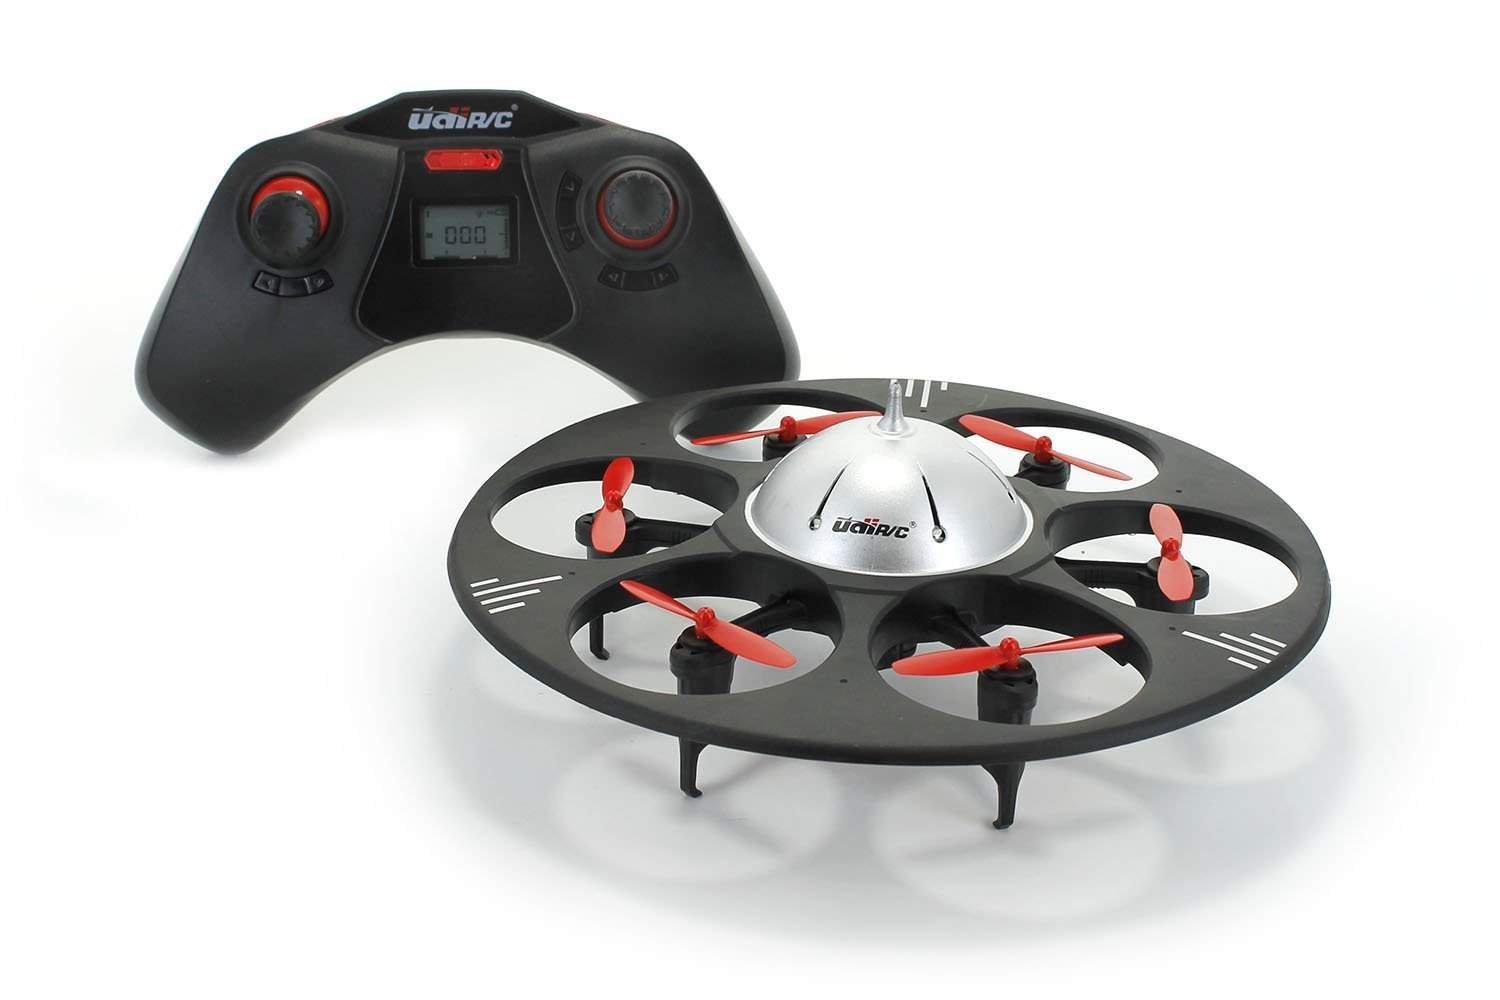 Best Drone For Kids January 2018 Buyers Guide And Reviews